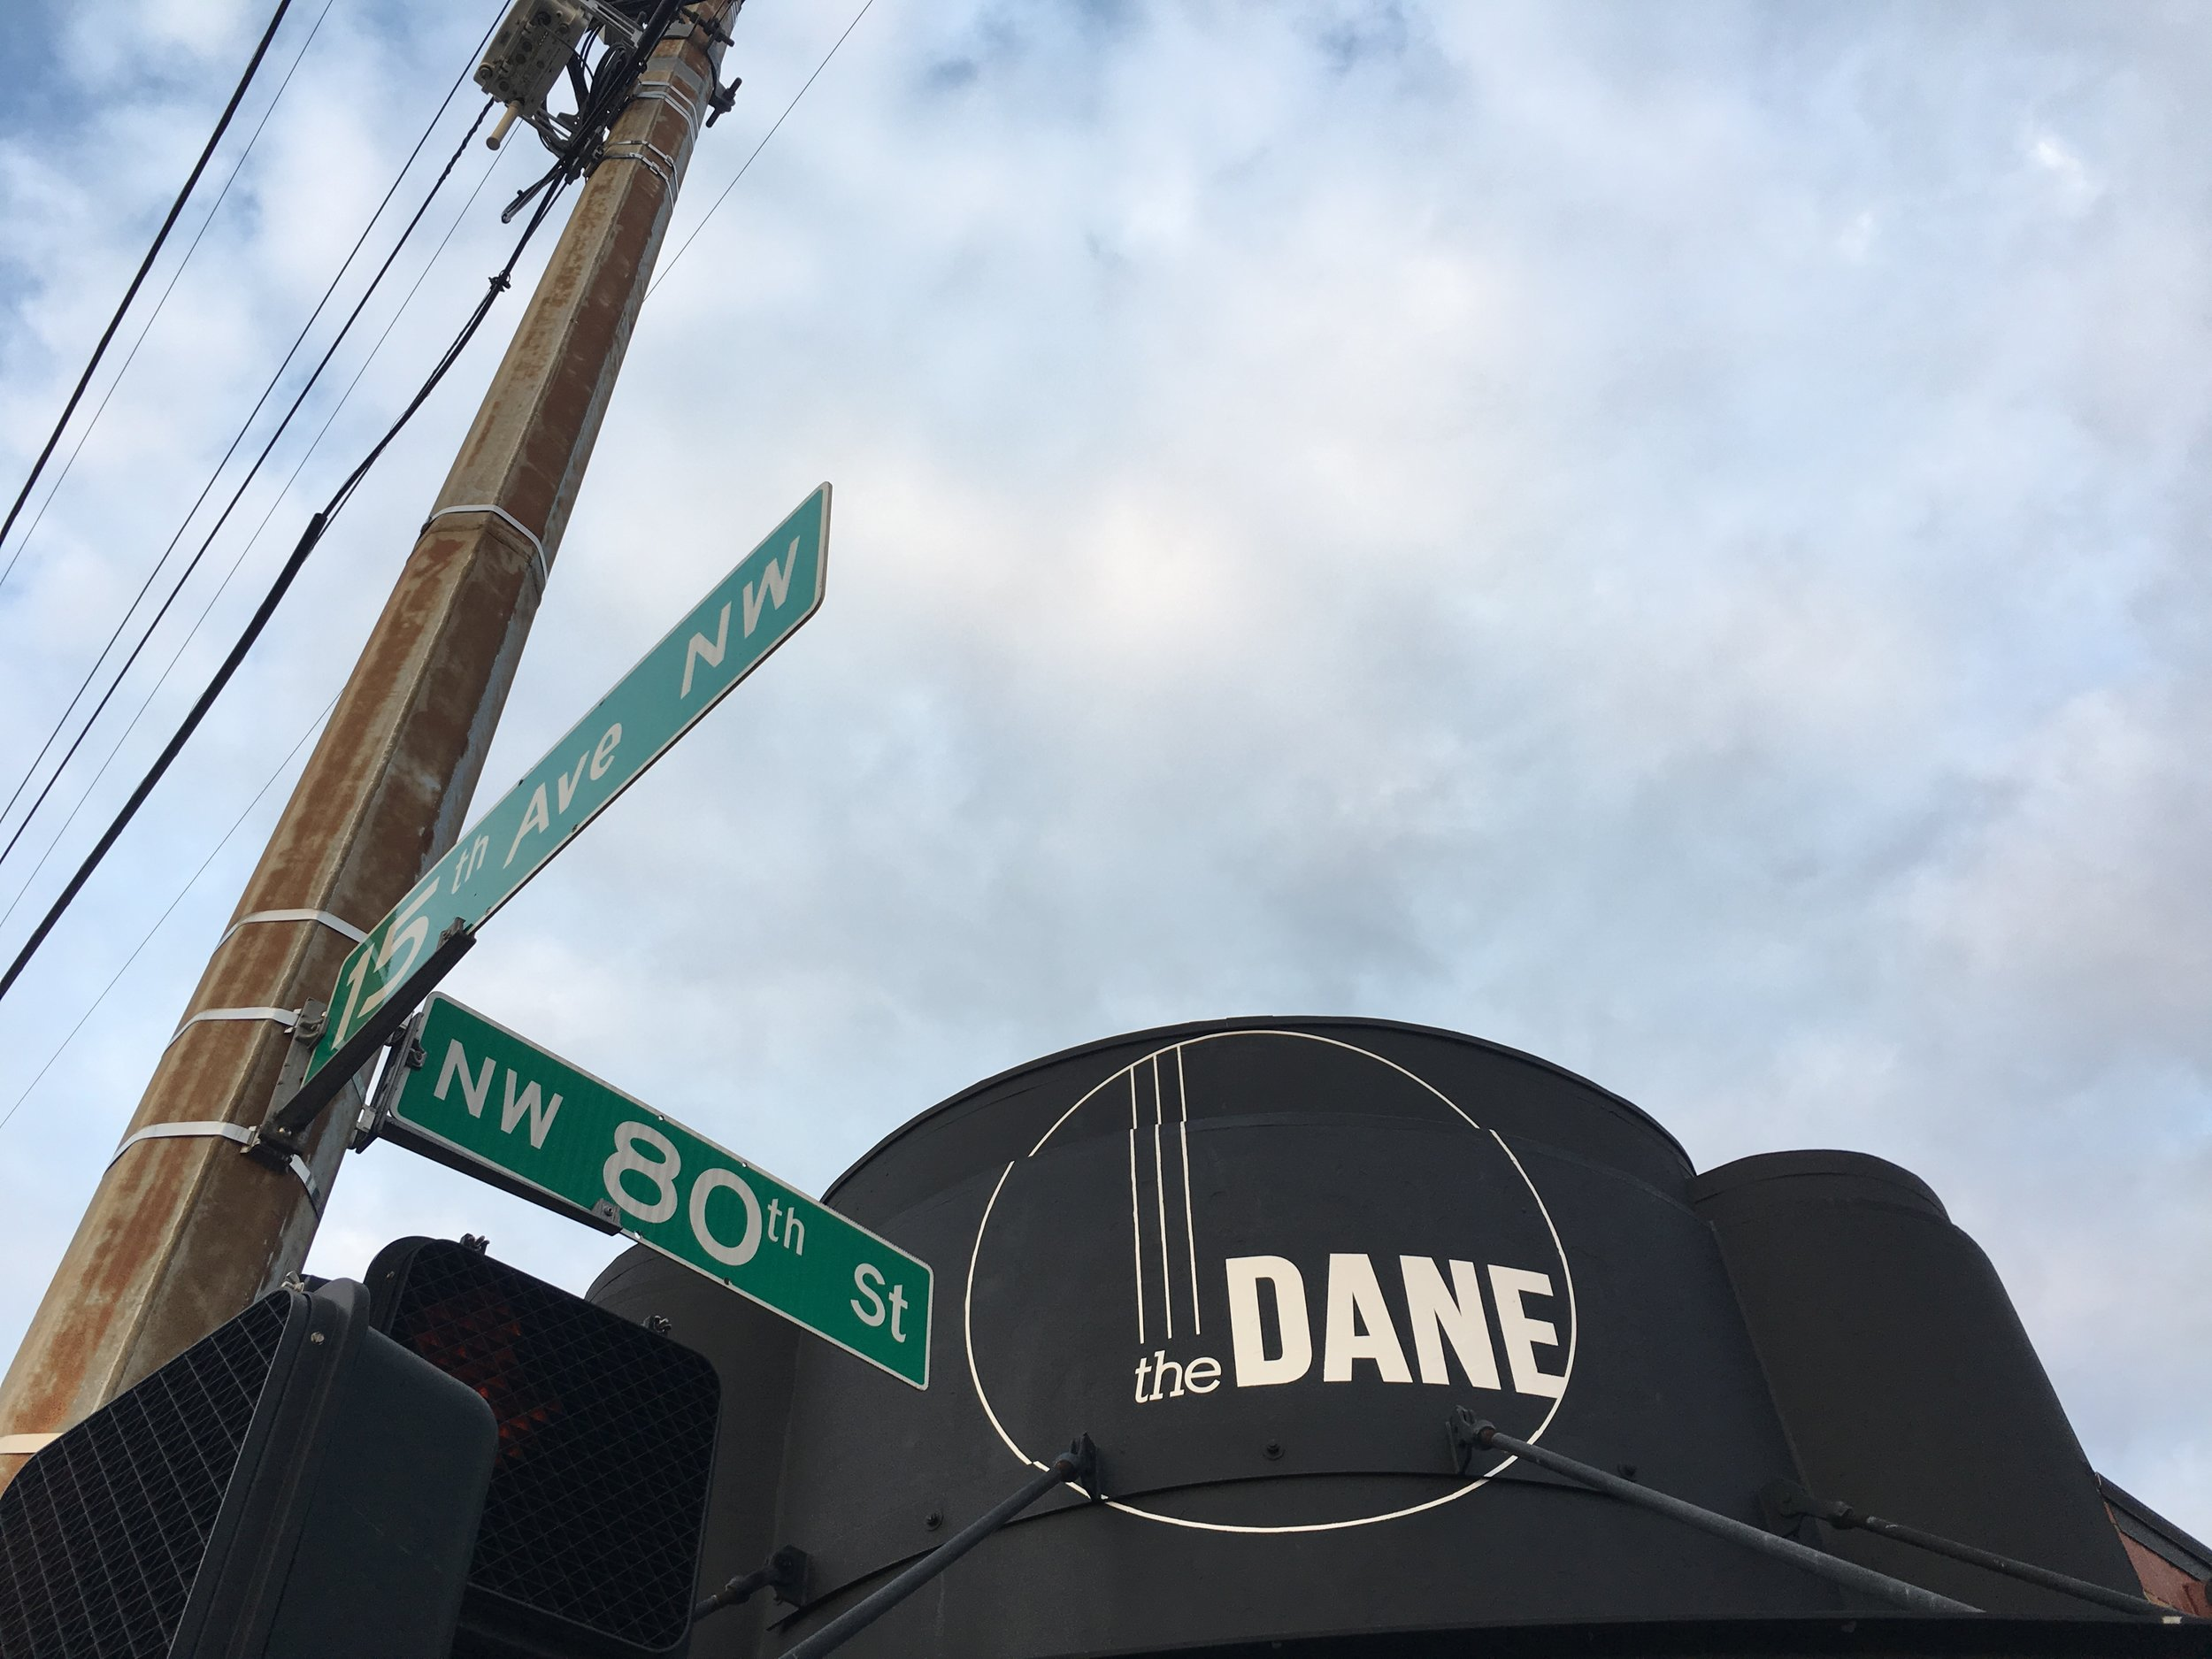 dane_NewSignwithStreets.JPG